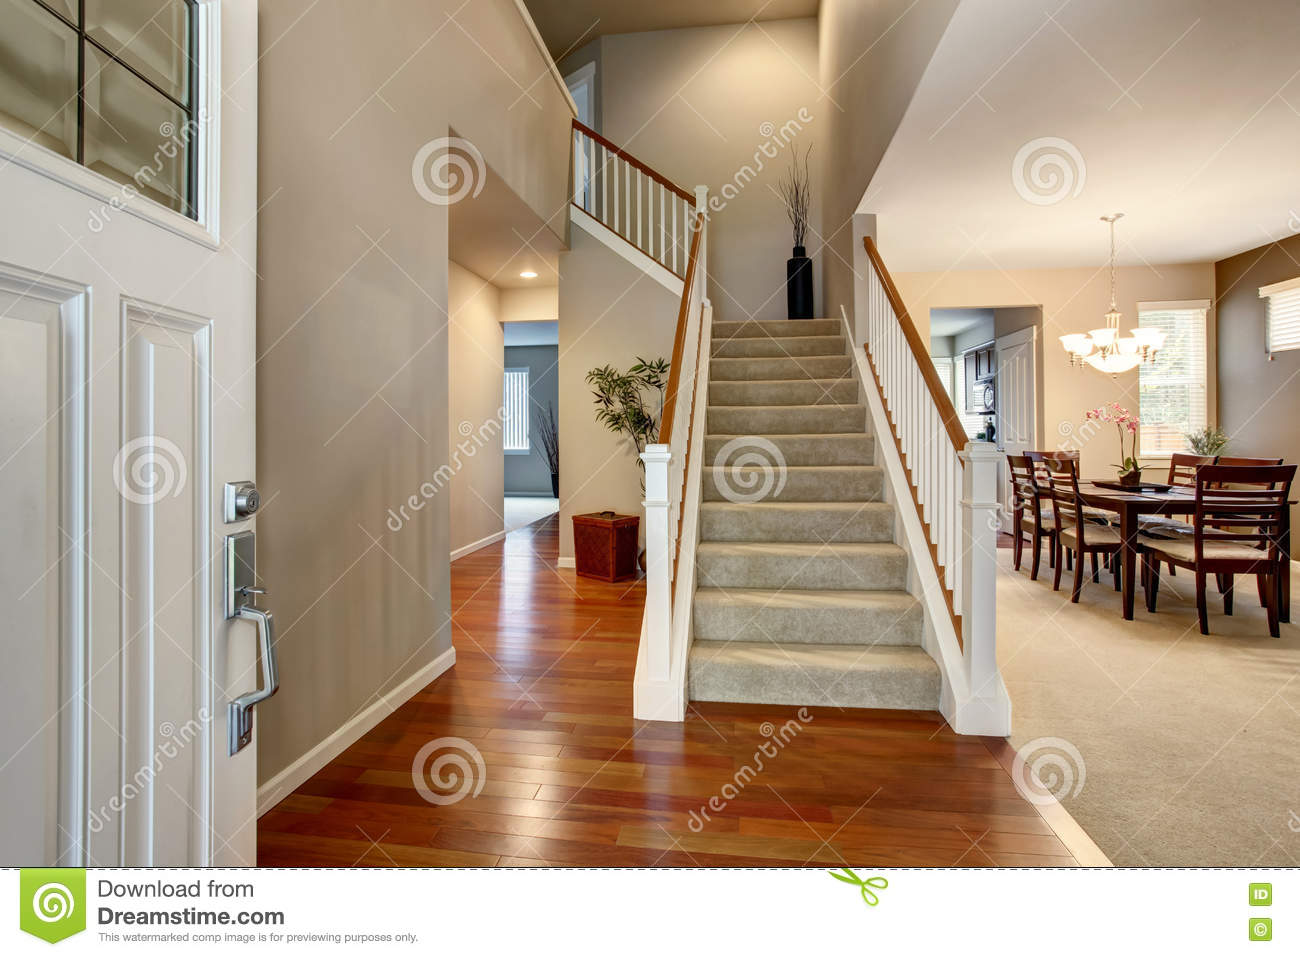 Light Entryway With View Of Staircase Hallway And Dining Room